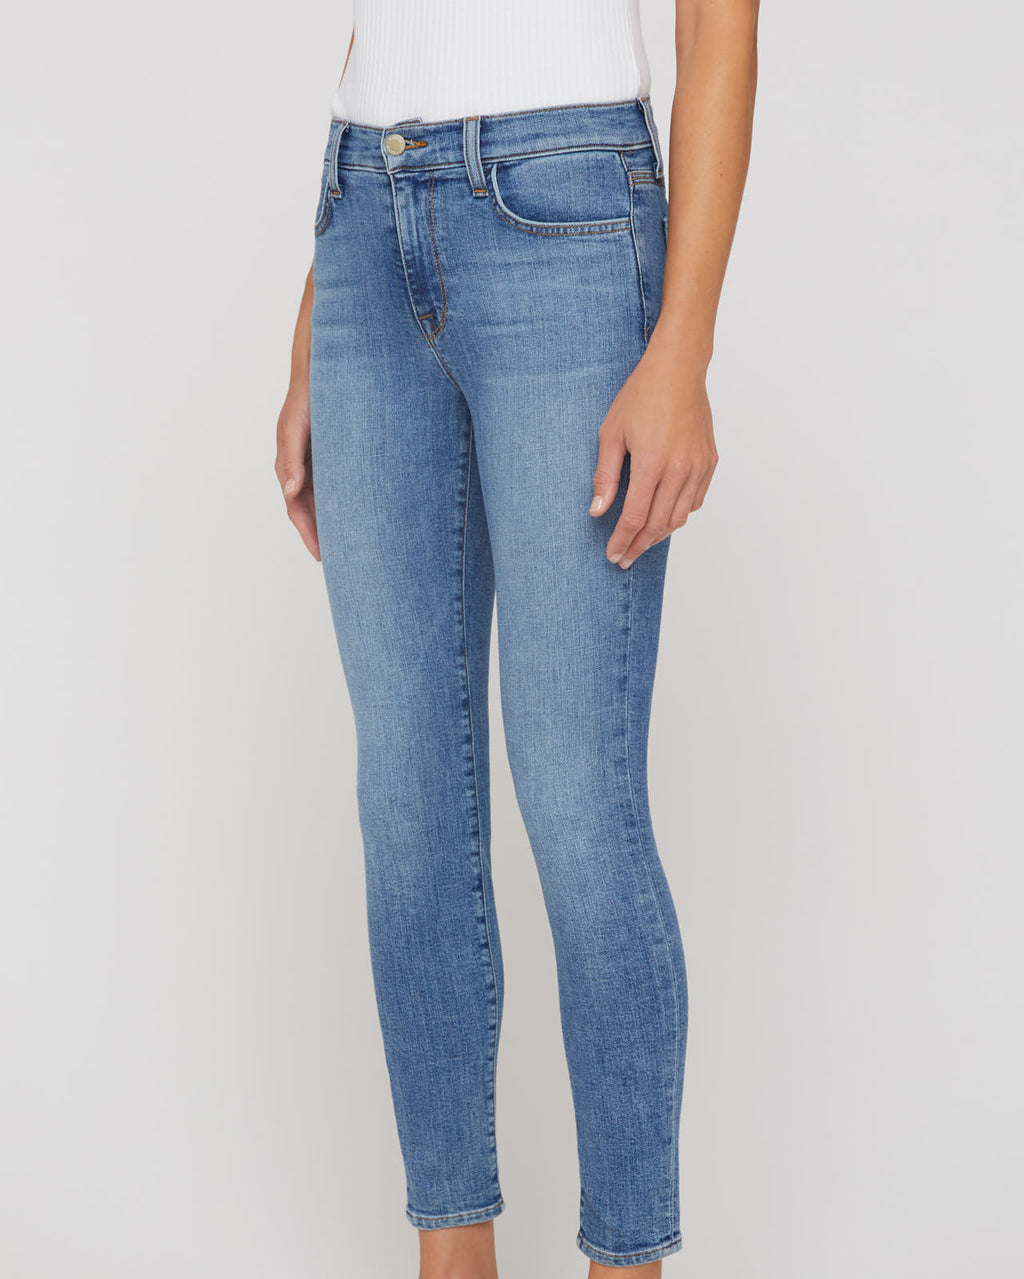 The Karlie Jean in Pure